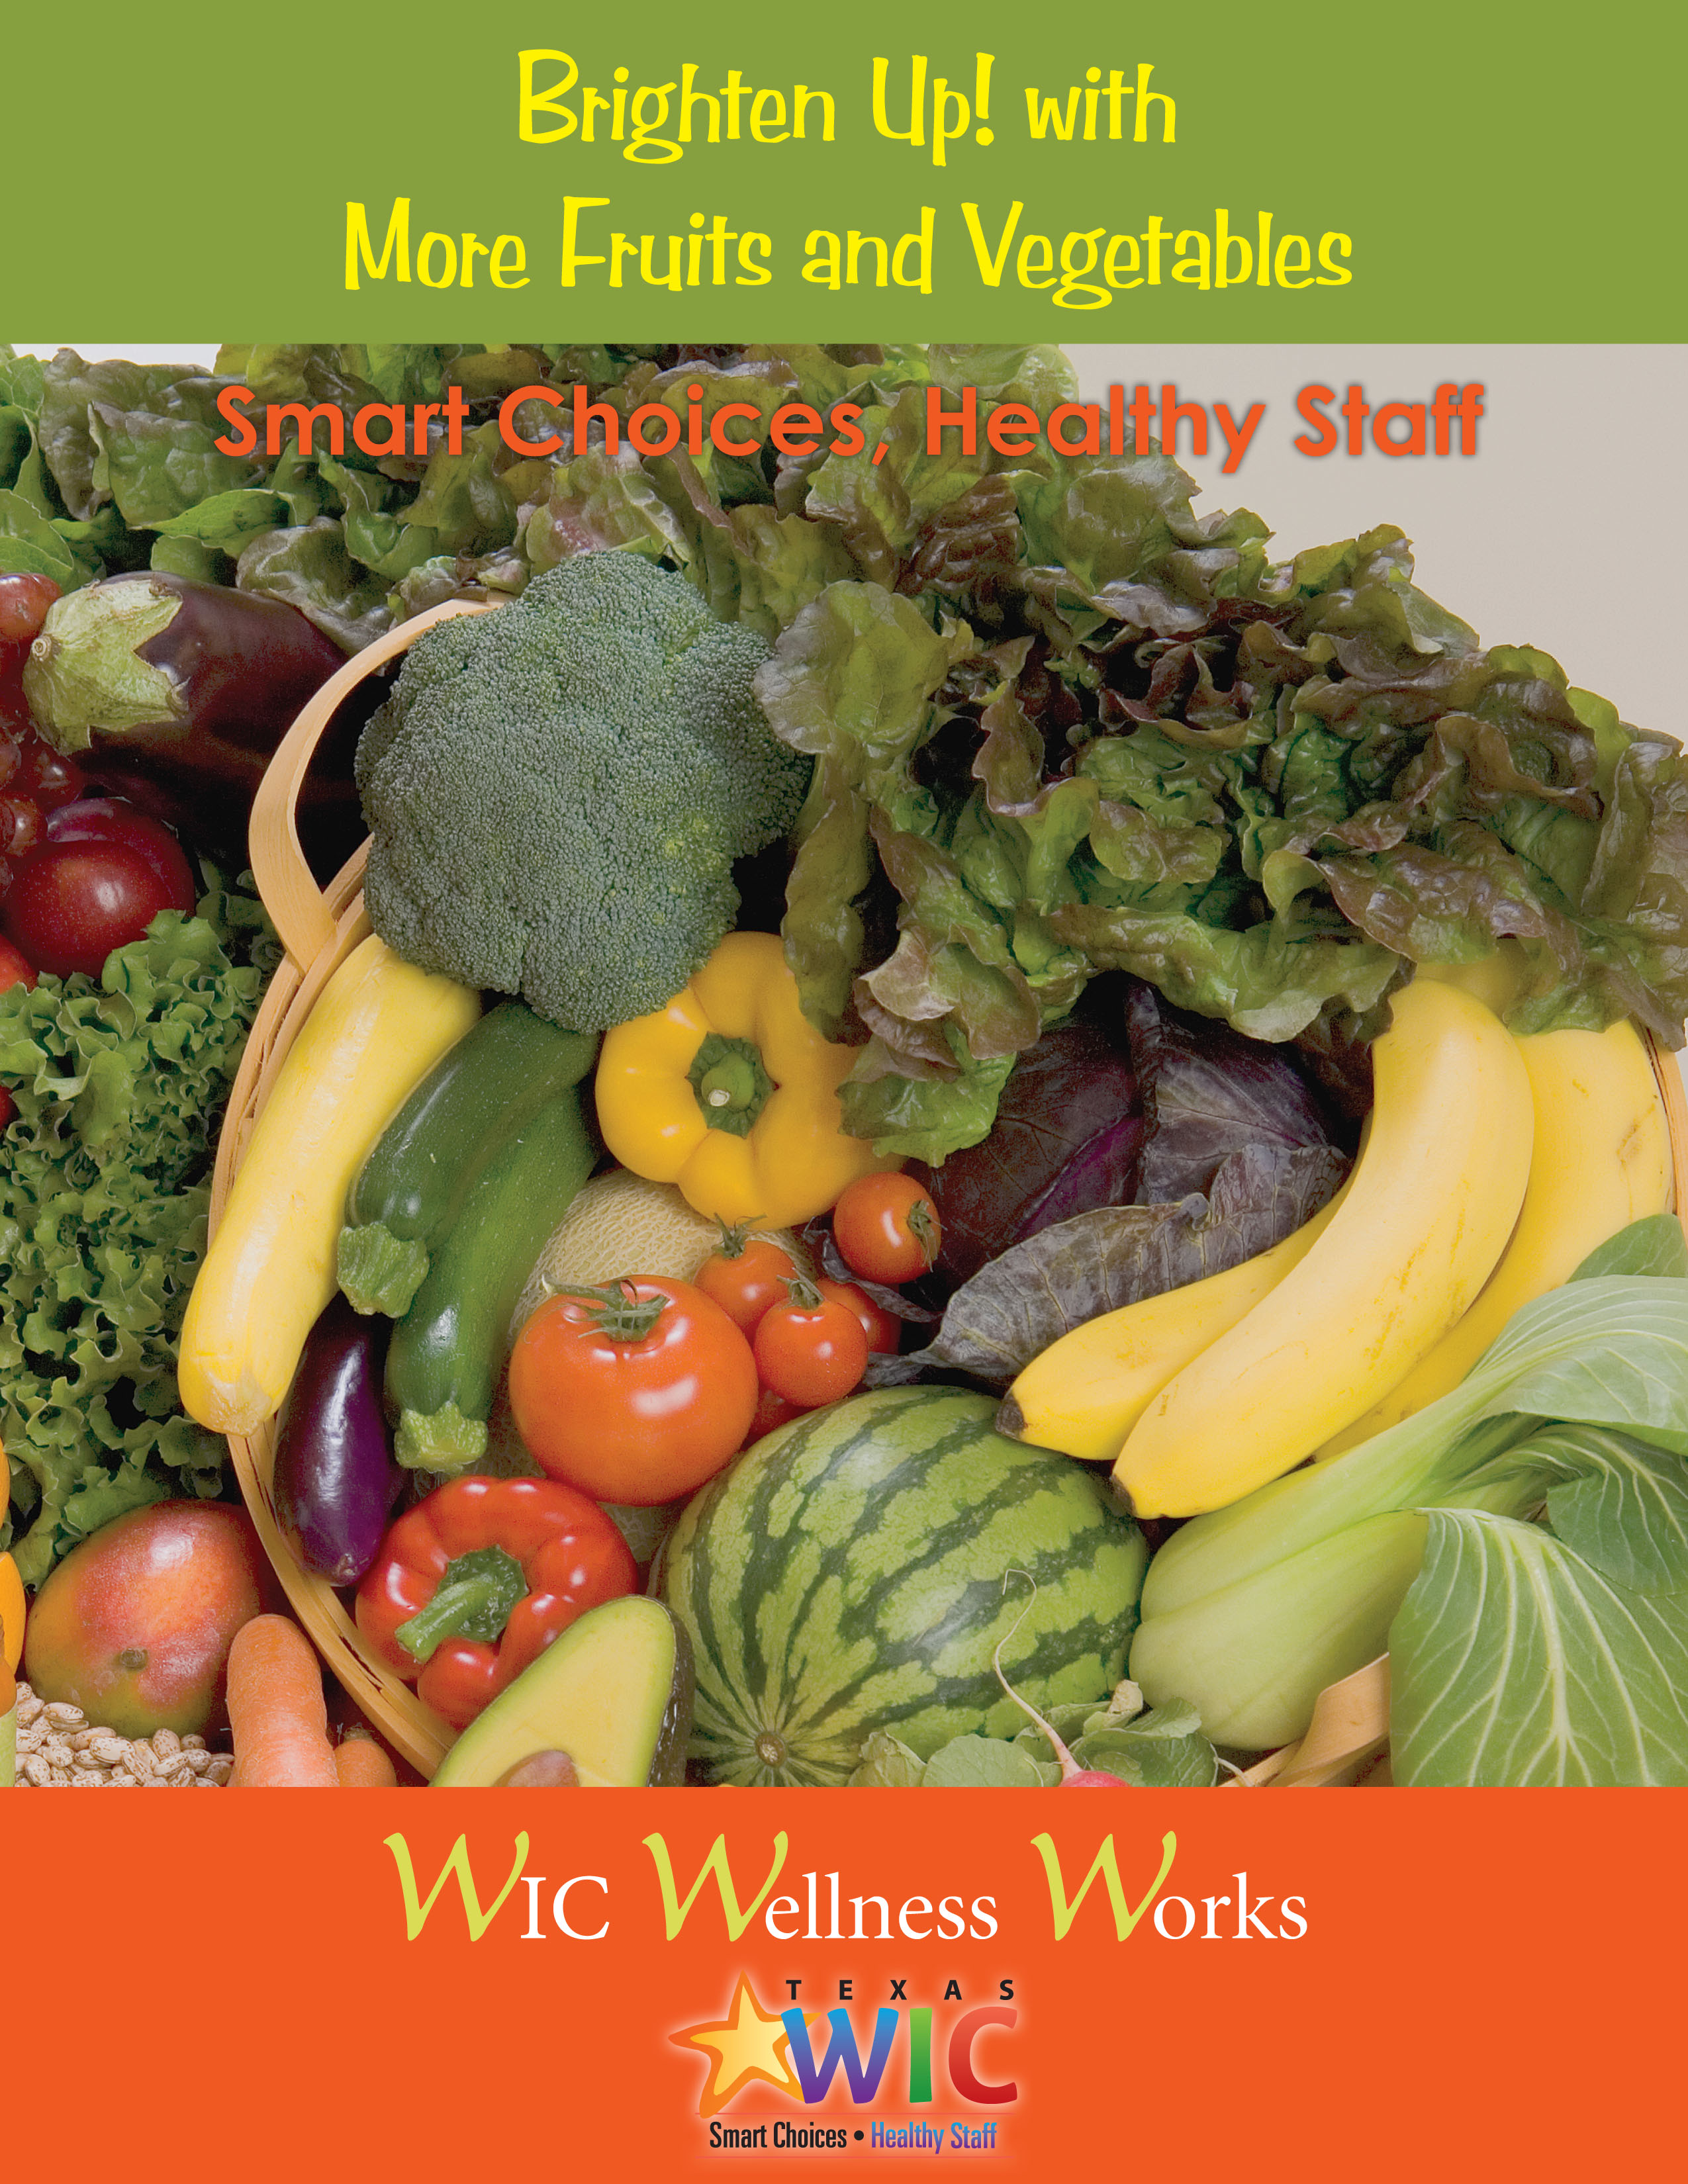 Smart Choices Fruits and vegetables